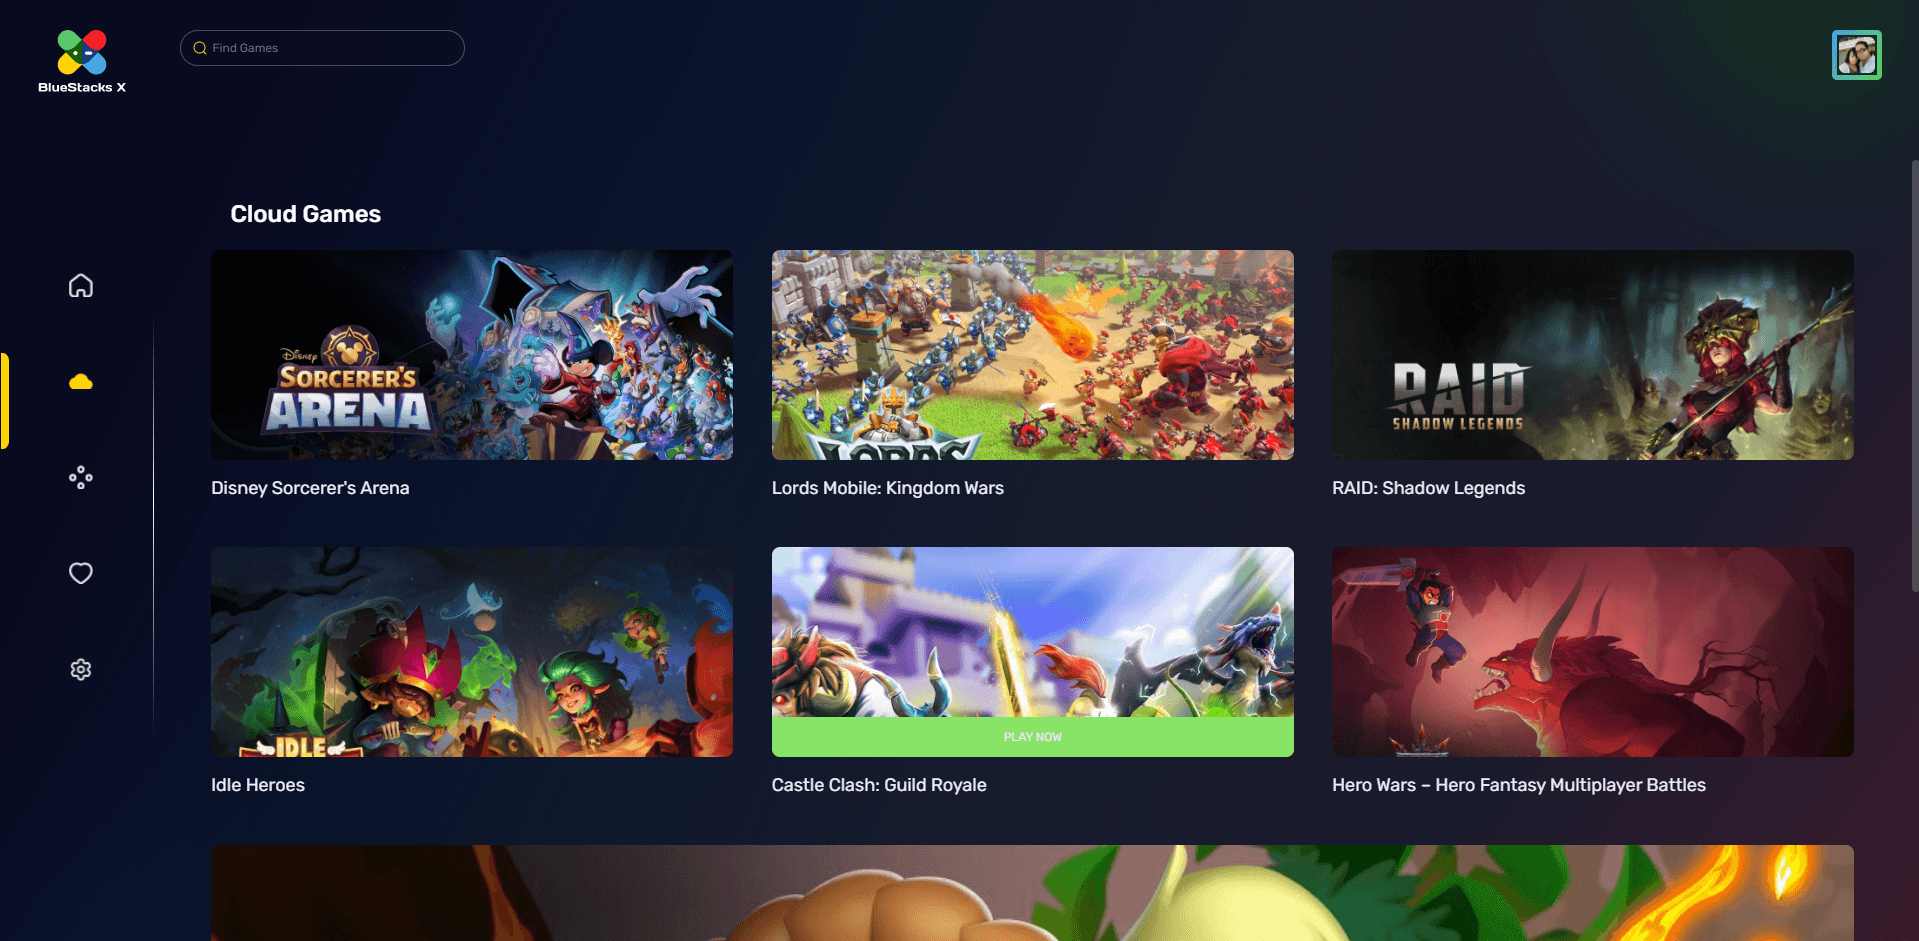 Cloud Gaming Is Coming To BlueStacks. Here's What Gamers Can Look Forward To!